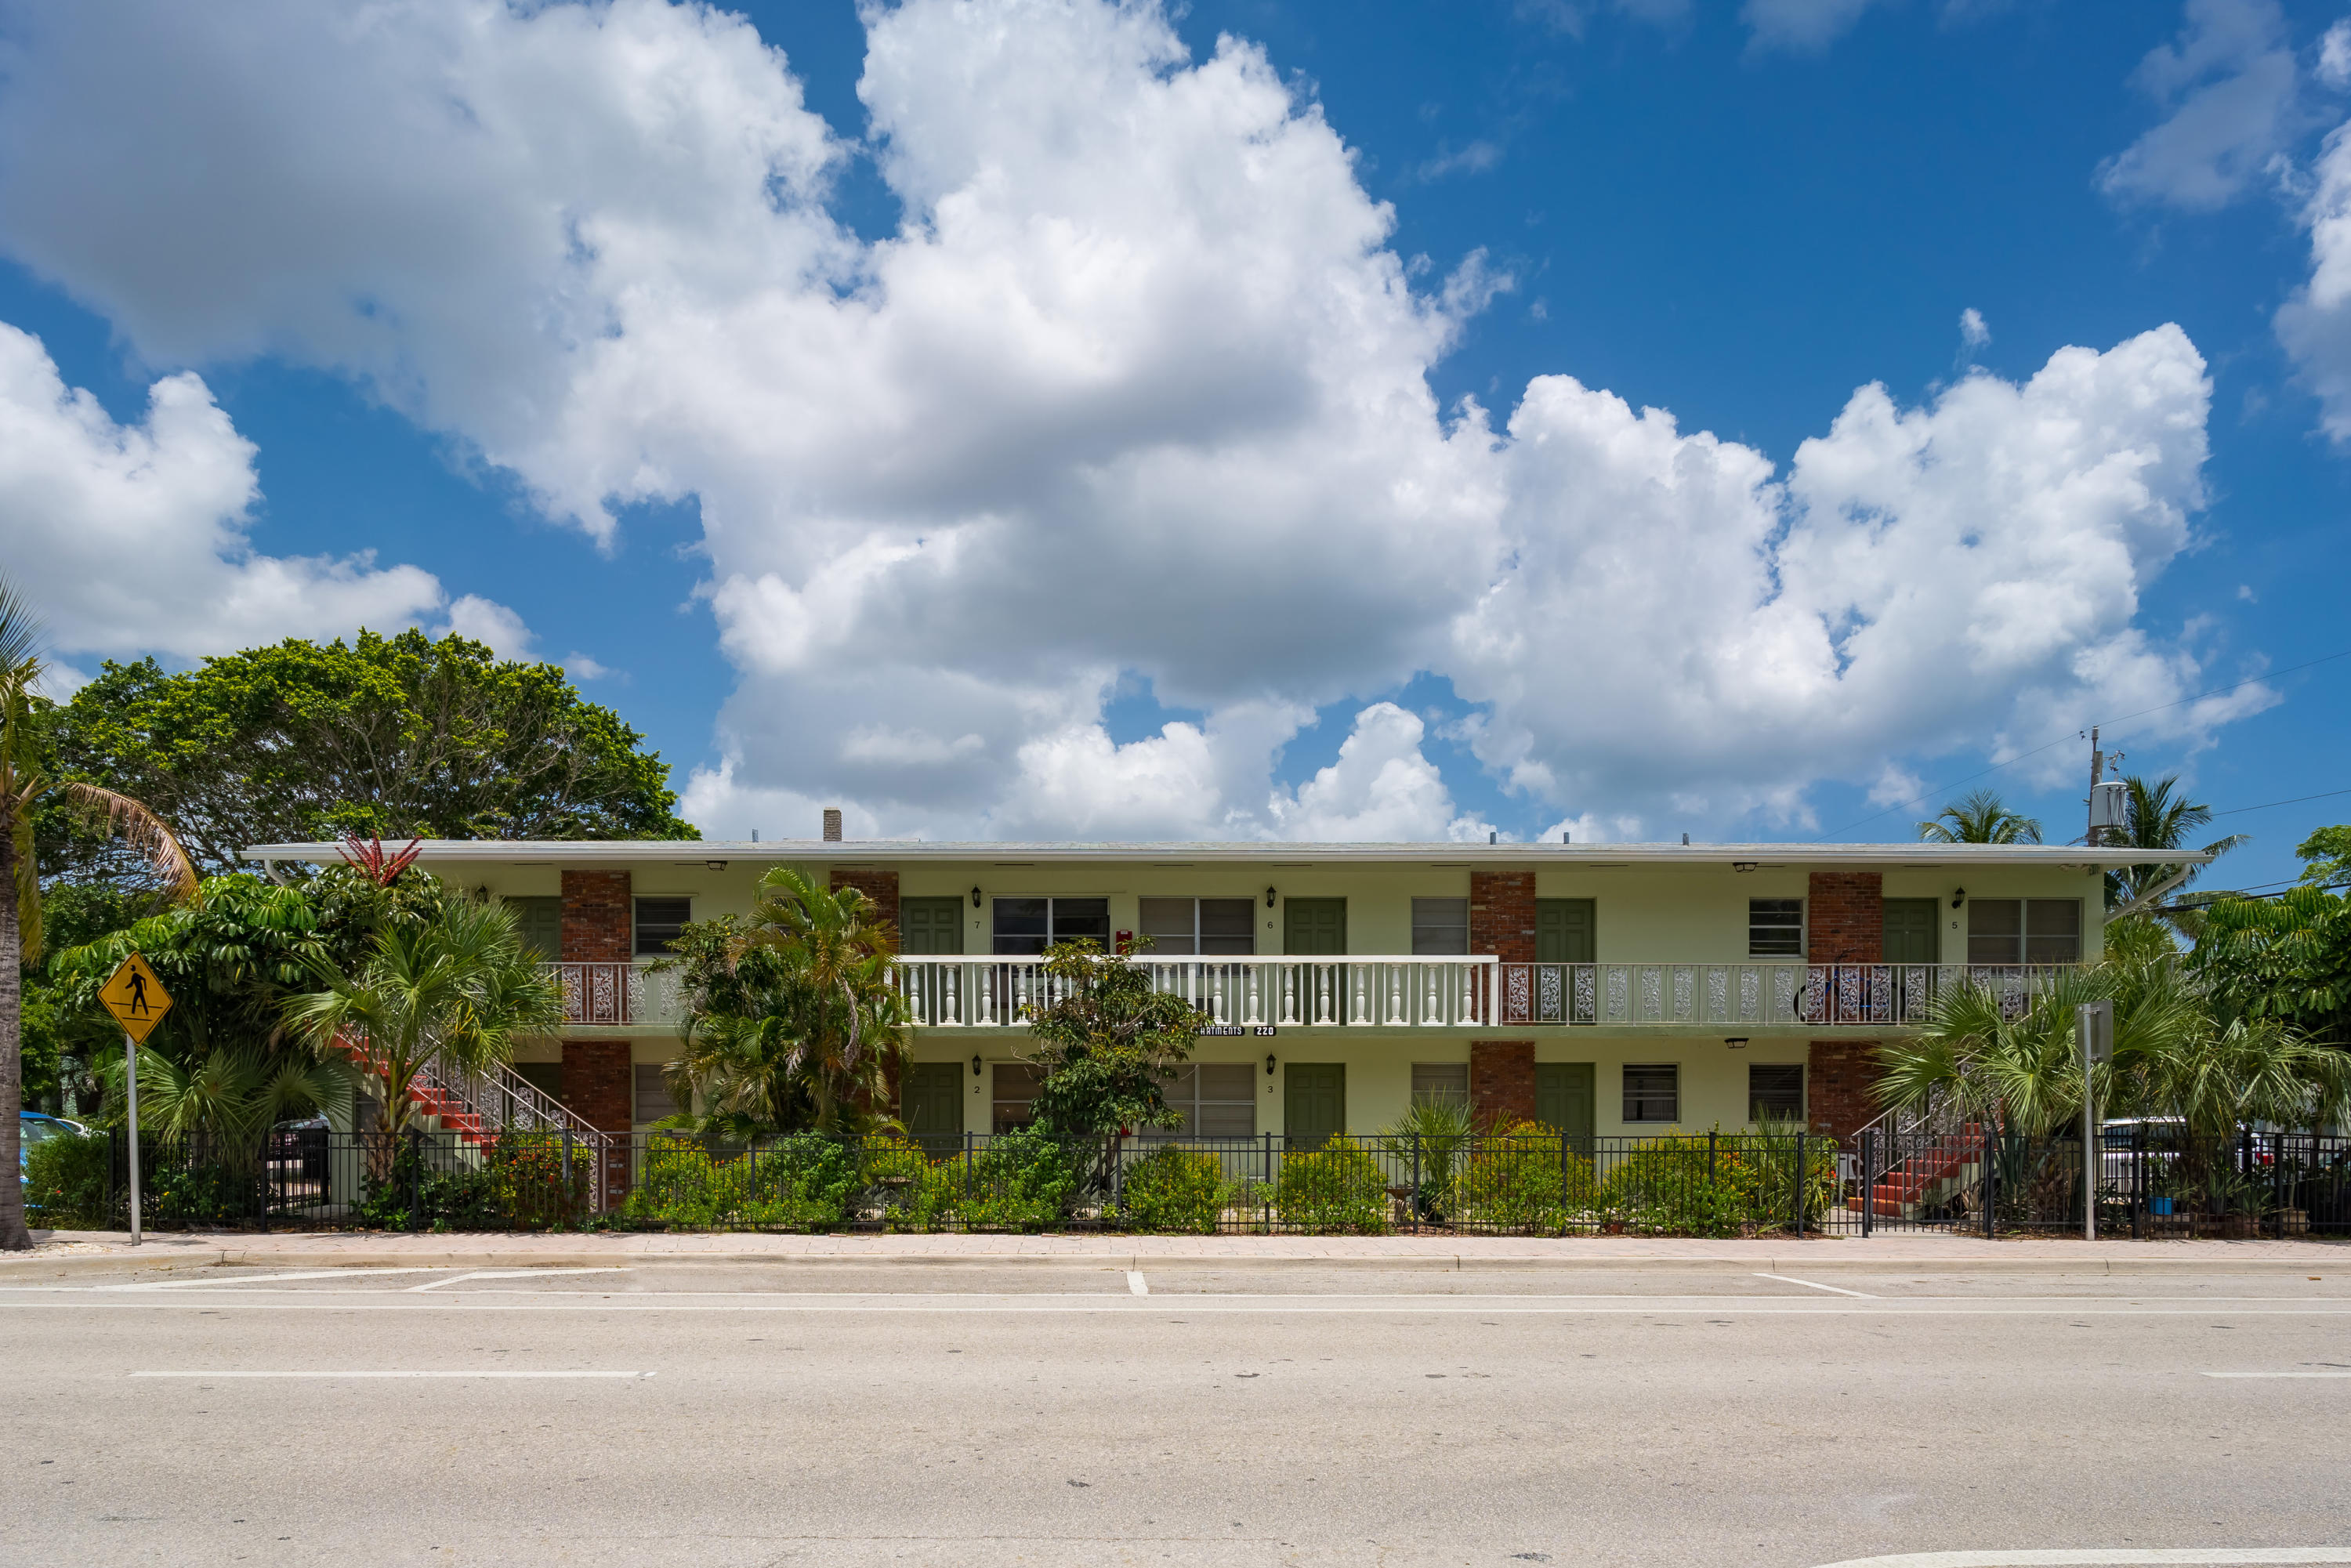 Home for sale in townsite apts one cond decl in Lake Worth Florida